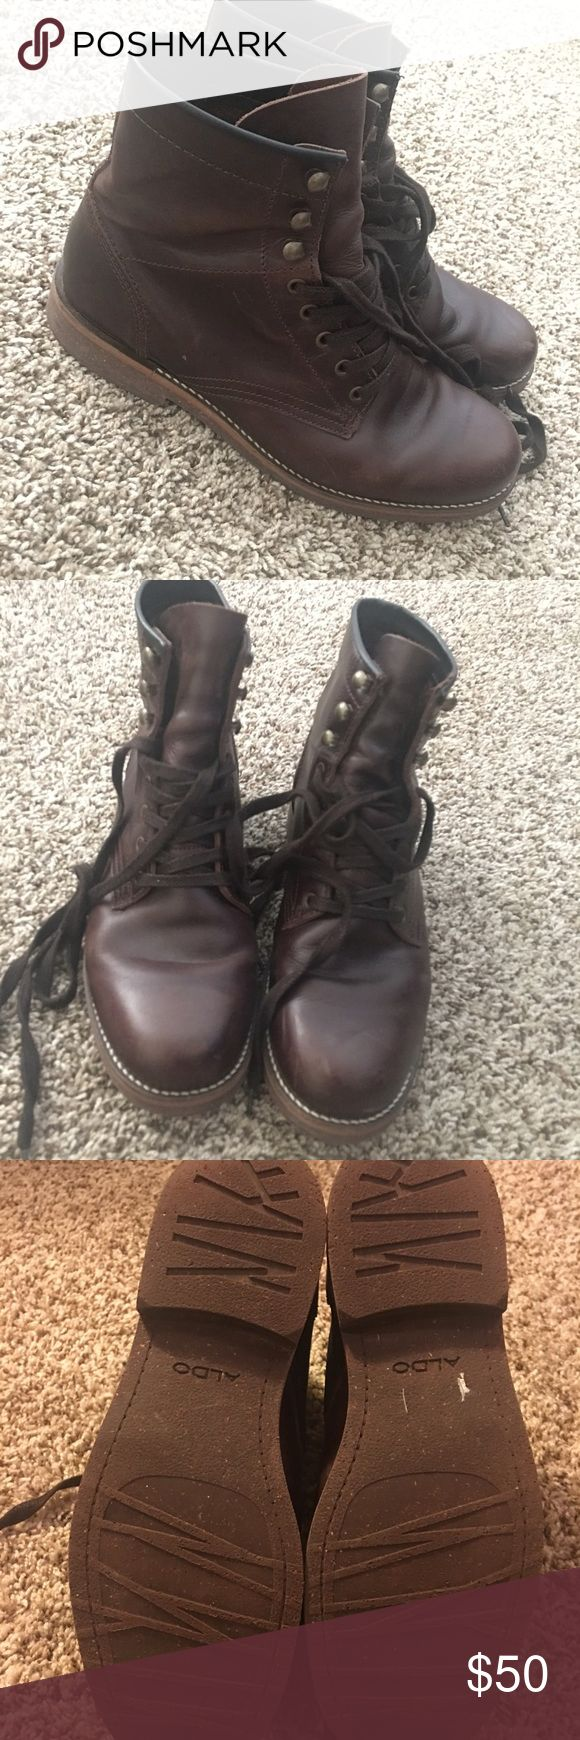 Leather Men's Aldo boots. No edits or filters to photos. Great condition. Aldo Shoes Boots